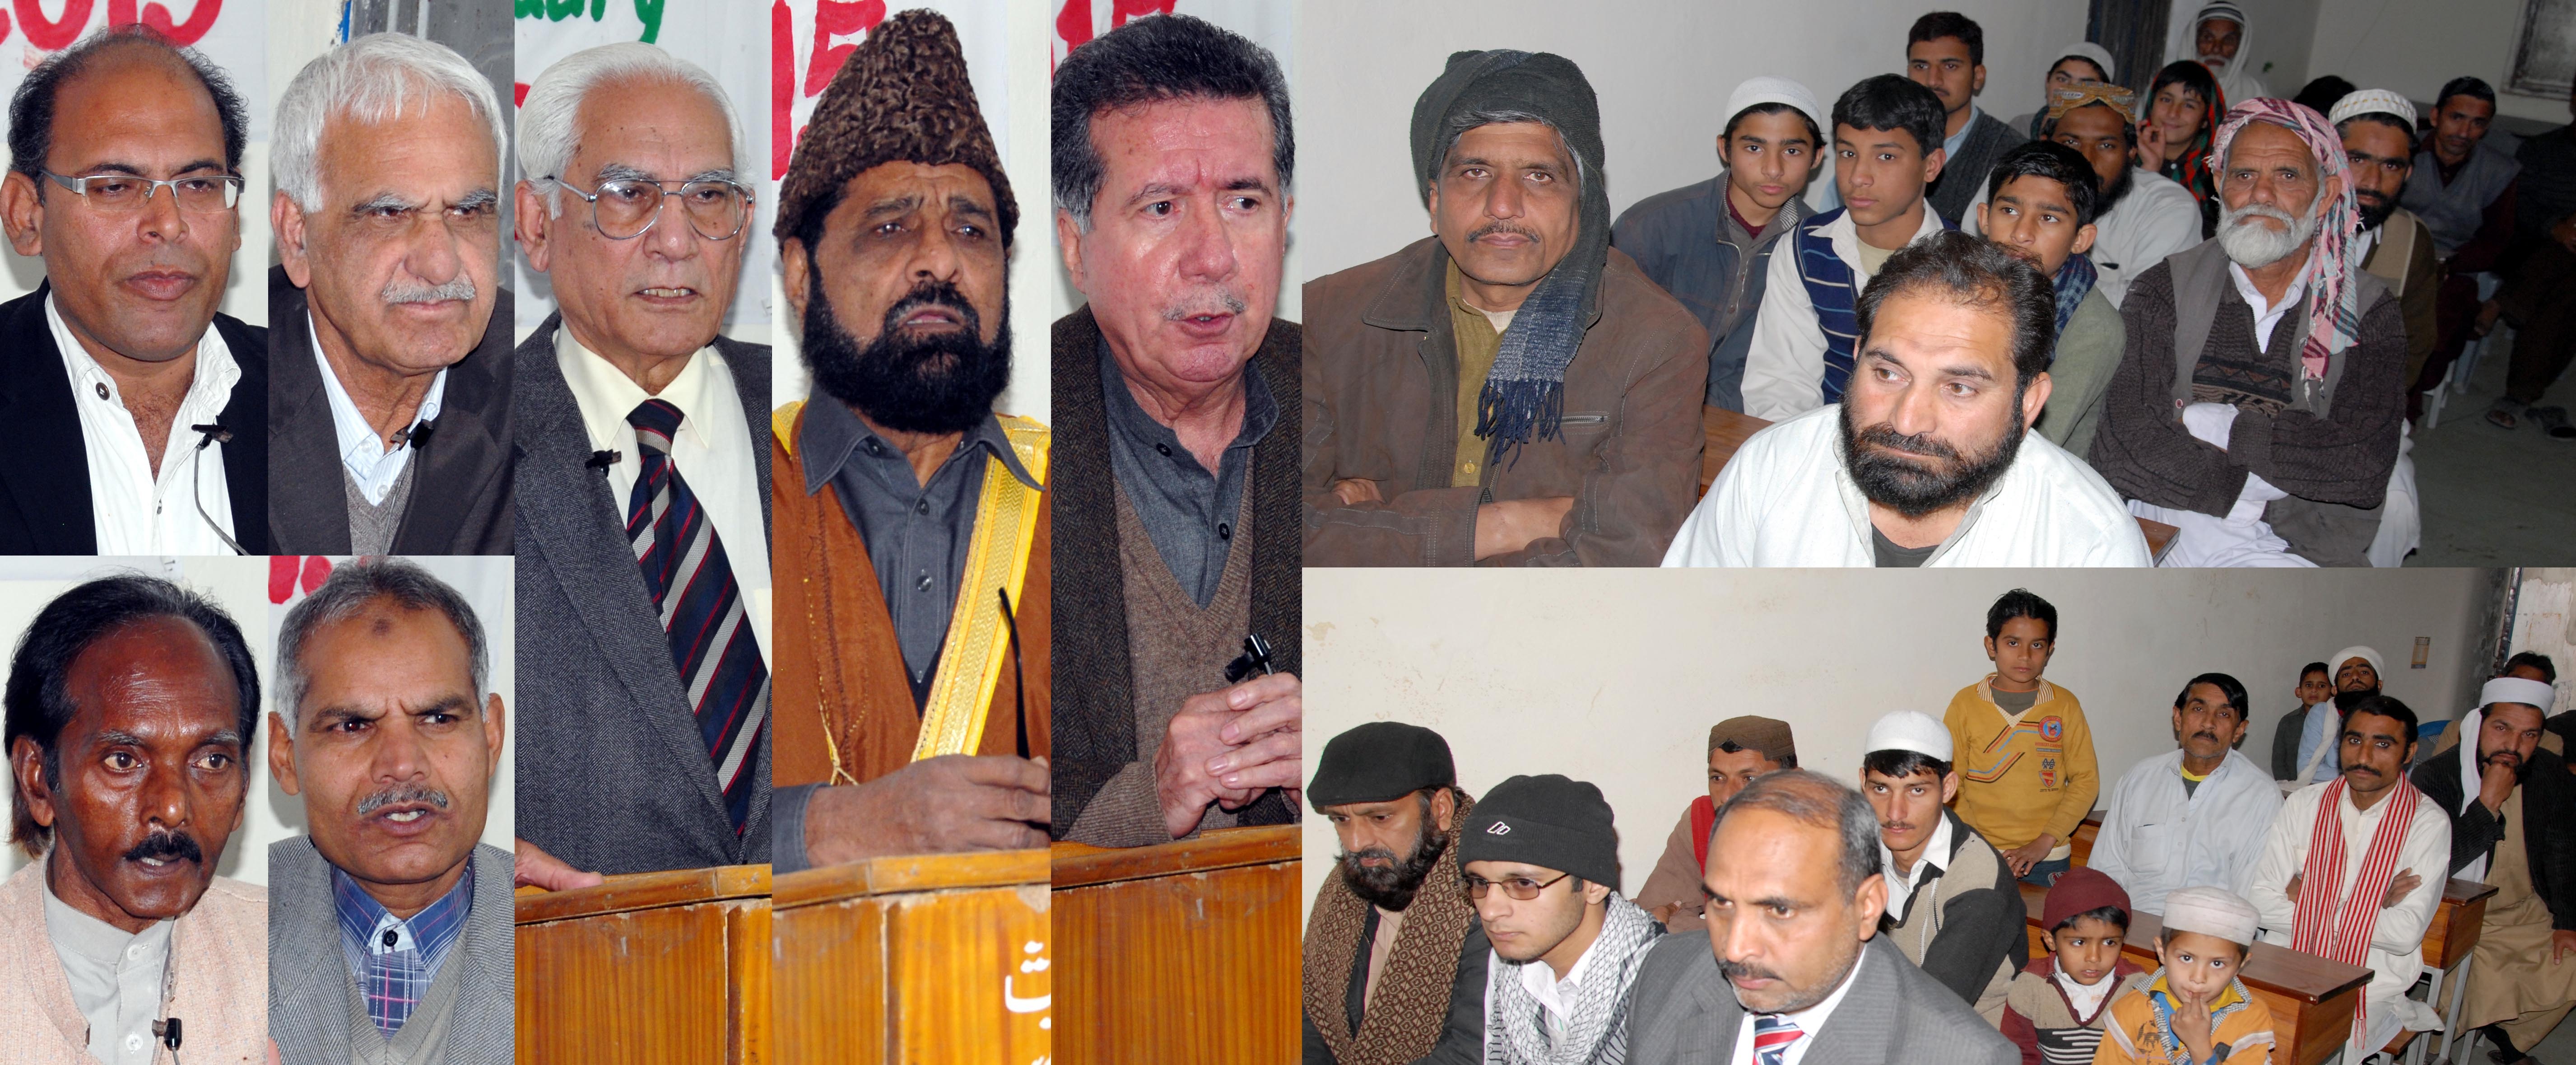 From left to right  Mr Afrasiab Khan Chairman Human Right Comittee Senate Pakistan  Dr Allama G R Chishti Chairman UIPM  Mr Ahmad Raza Qusoori Adv. Of APML  Pastor Salman Nasri Pastor Saleem Masieh Professor Mehrdad Bah.jpg